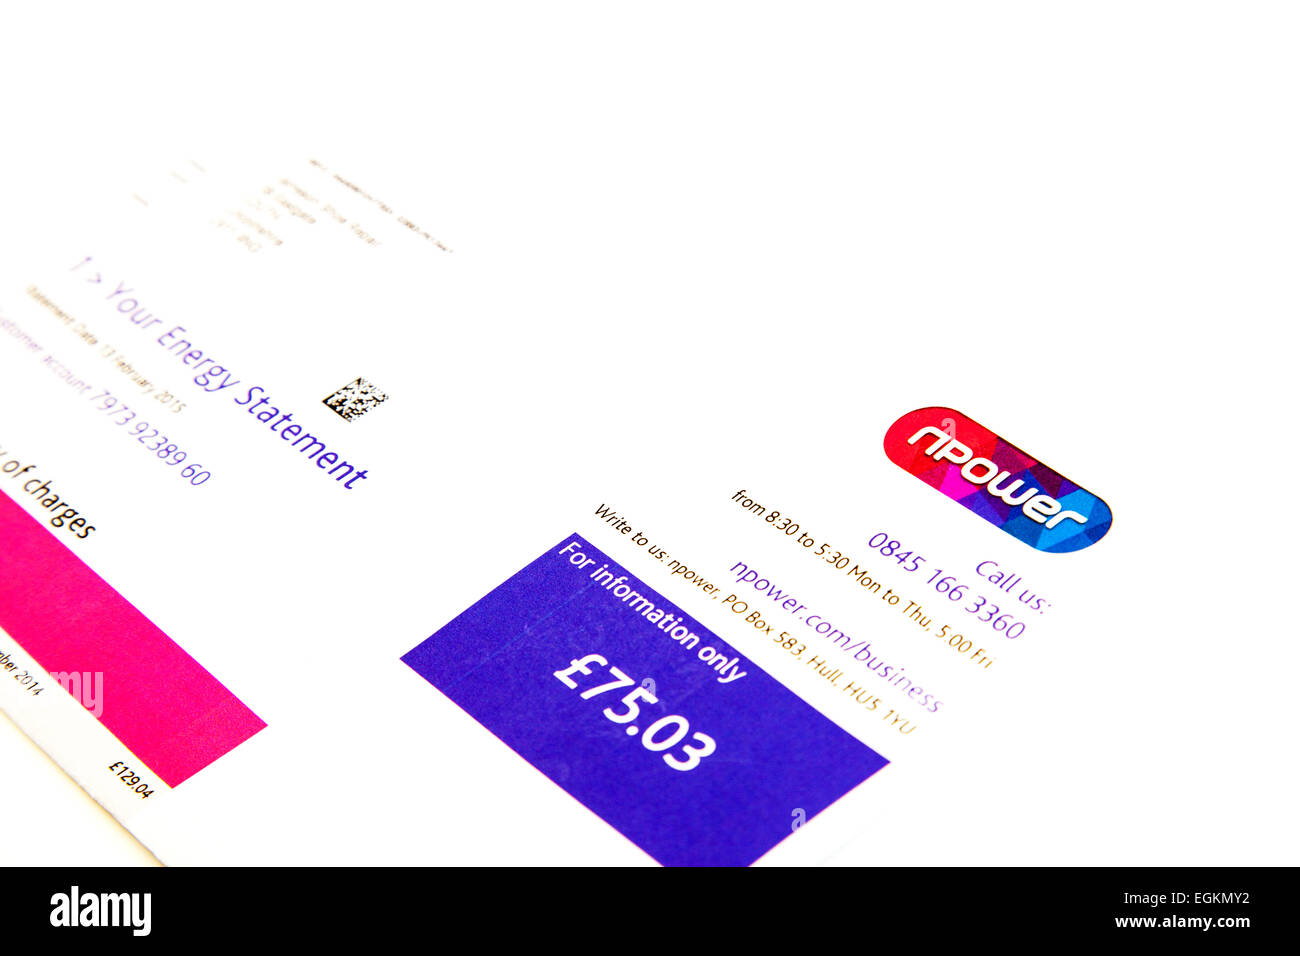 Npower bill electricity electric letter letterhead logo billing statement cutout cut out white background copy space - Stock Image